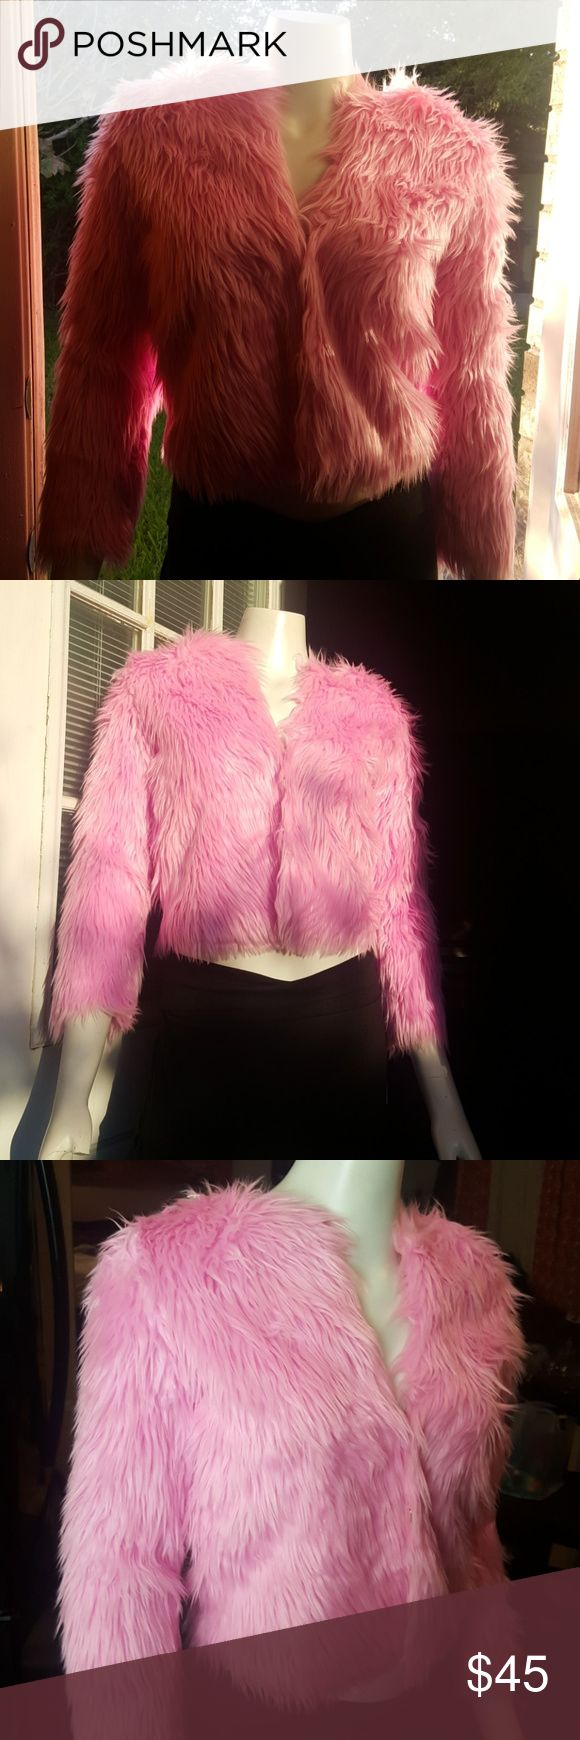 Faux fur cotton candy jacket. NWT. Hot pink furry jacket! Perfect for raves, festivals, cocktail parties. Dress up or down. HAODUOYI Jackets & Coats Puffers